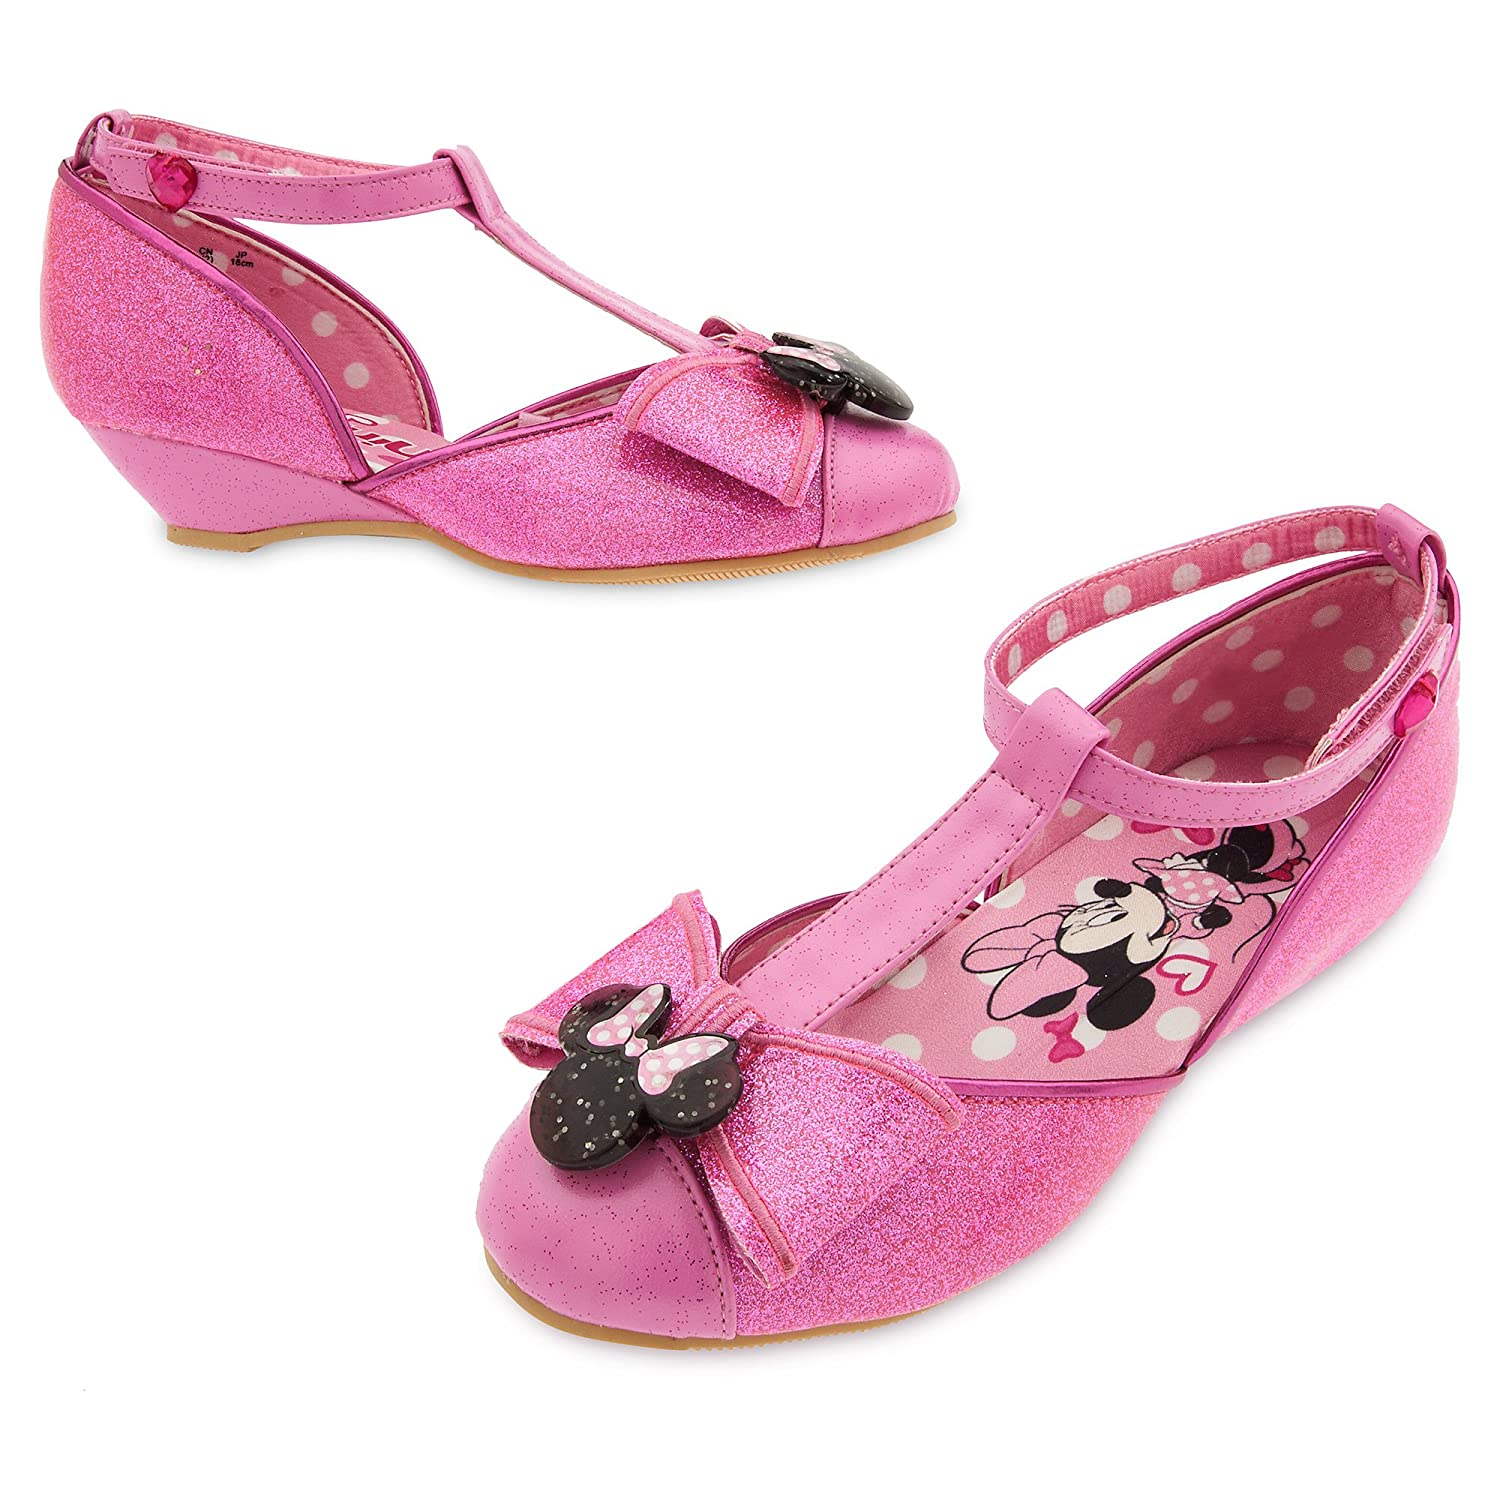 Disney Minnie Mouse Costume Shoes for Kids 2843057548076100